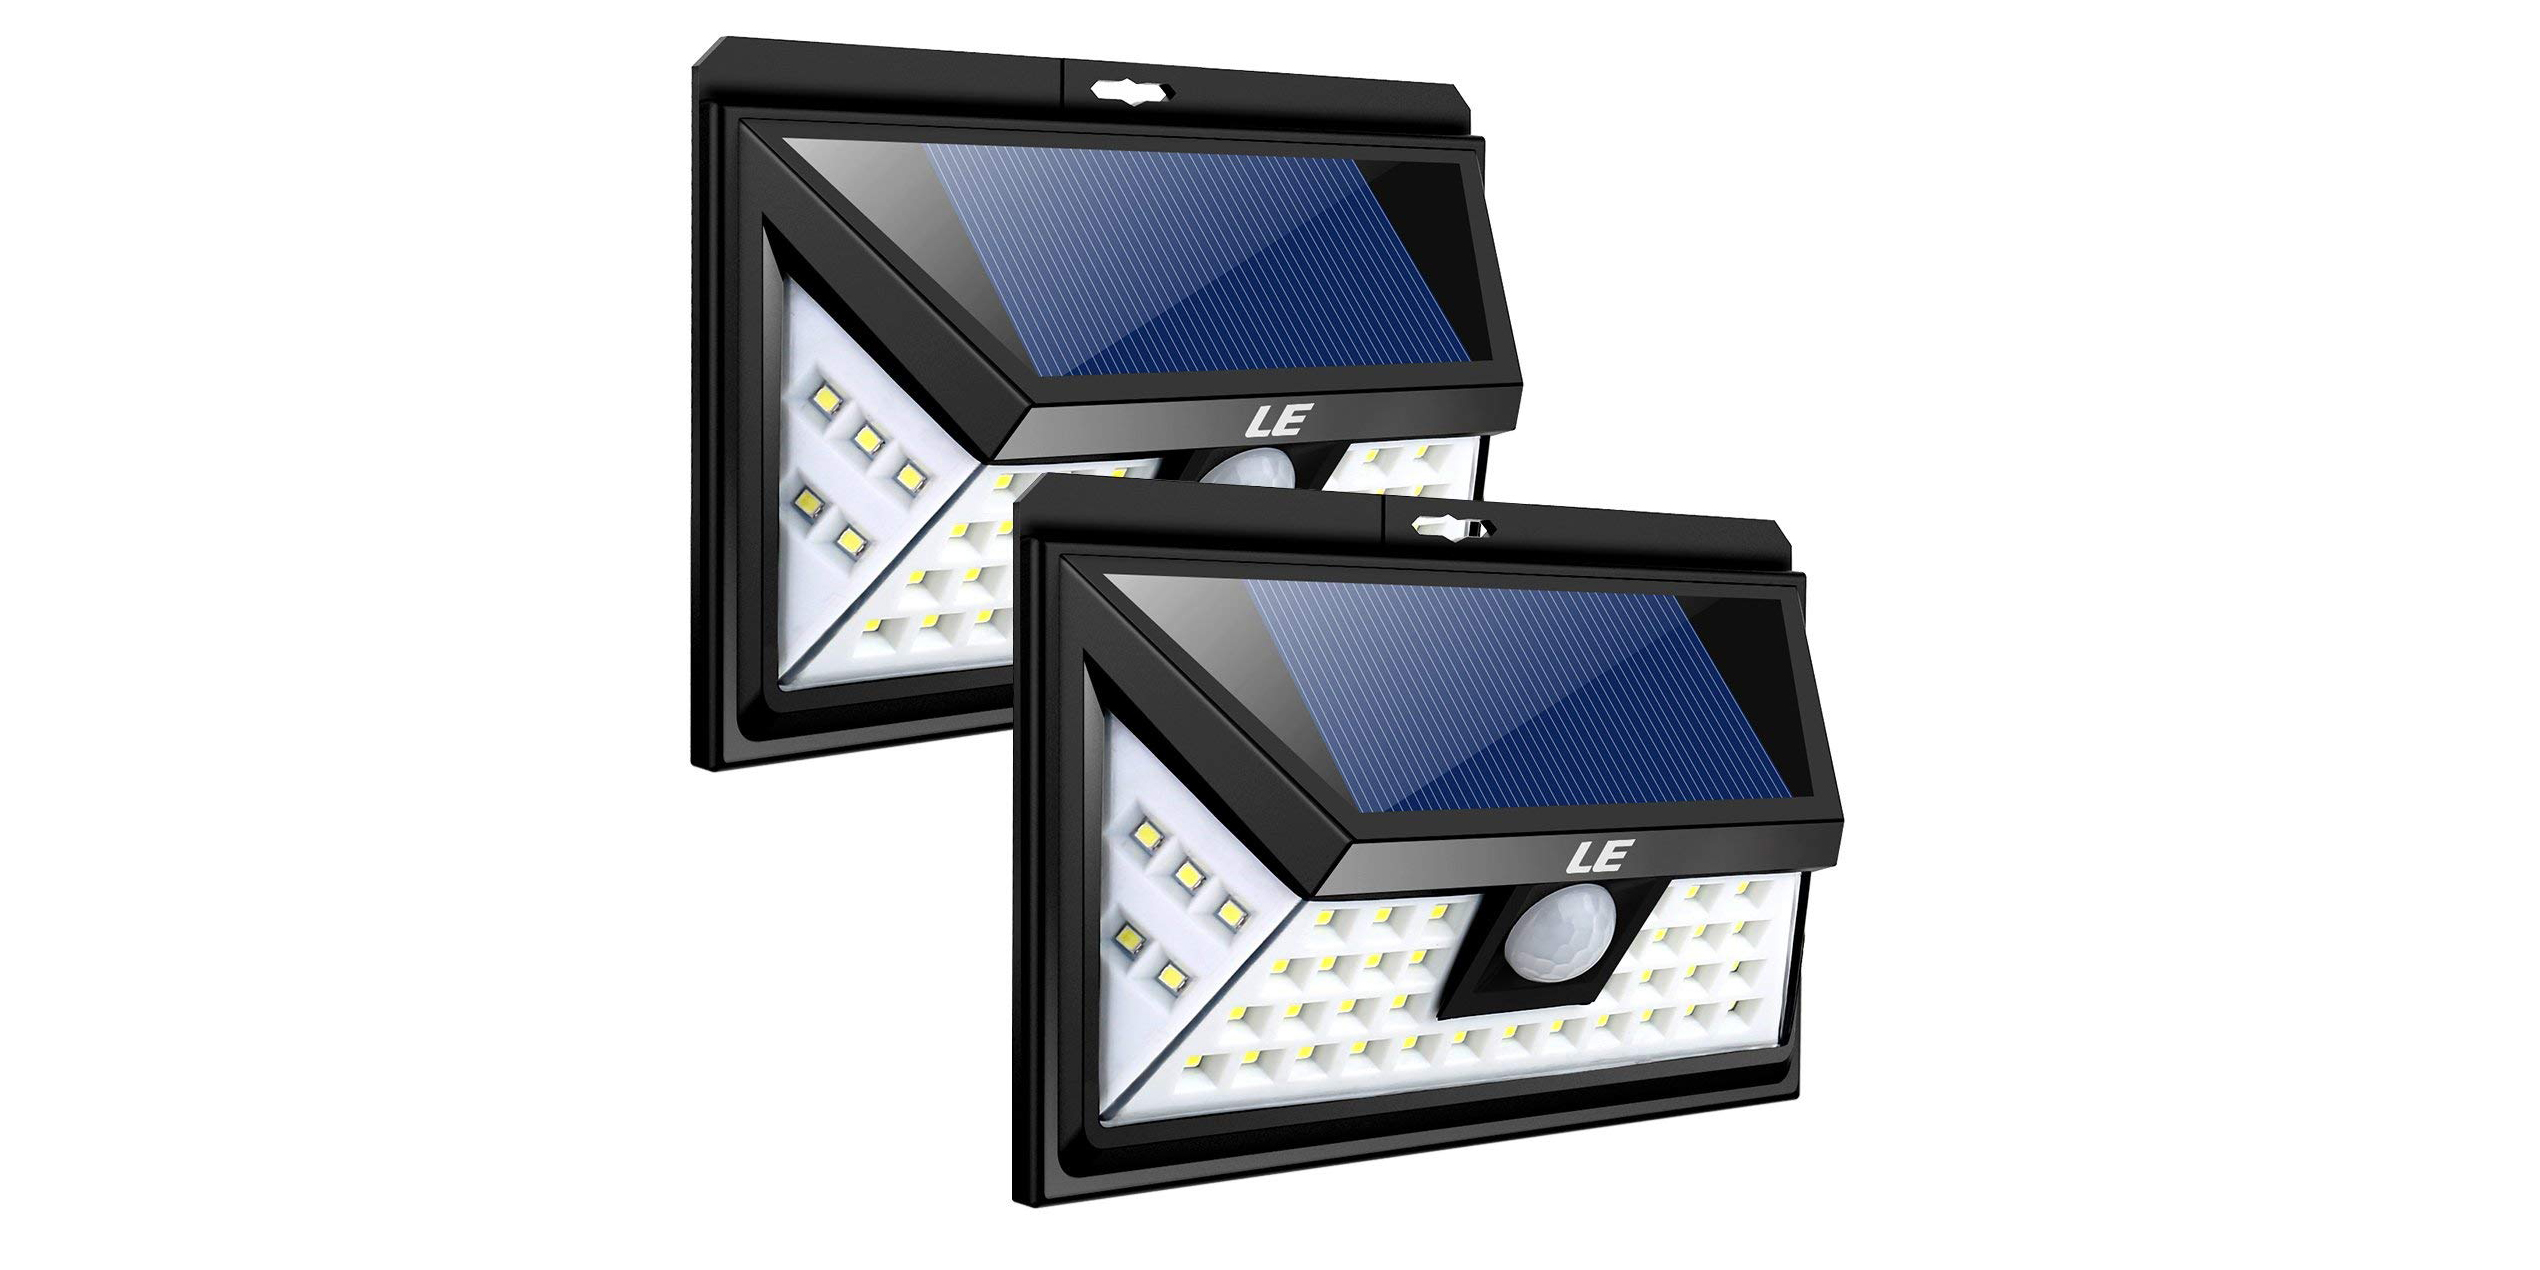 Green Deals: 2-pack LED Solar Outdoor Lights $21 (Reg. up to $30), more